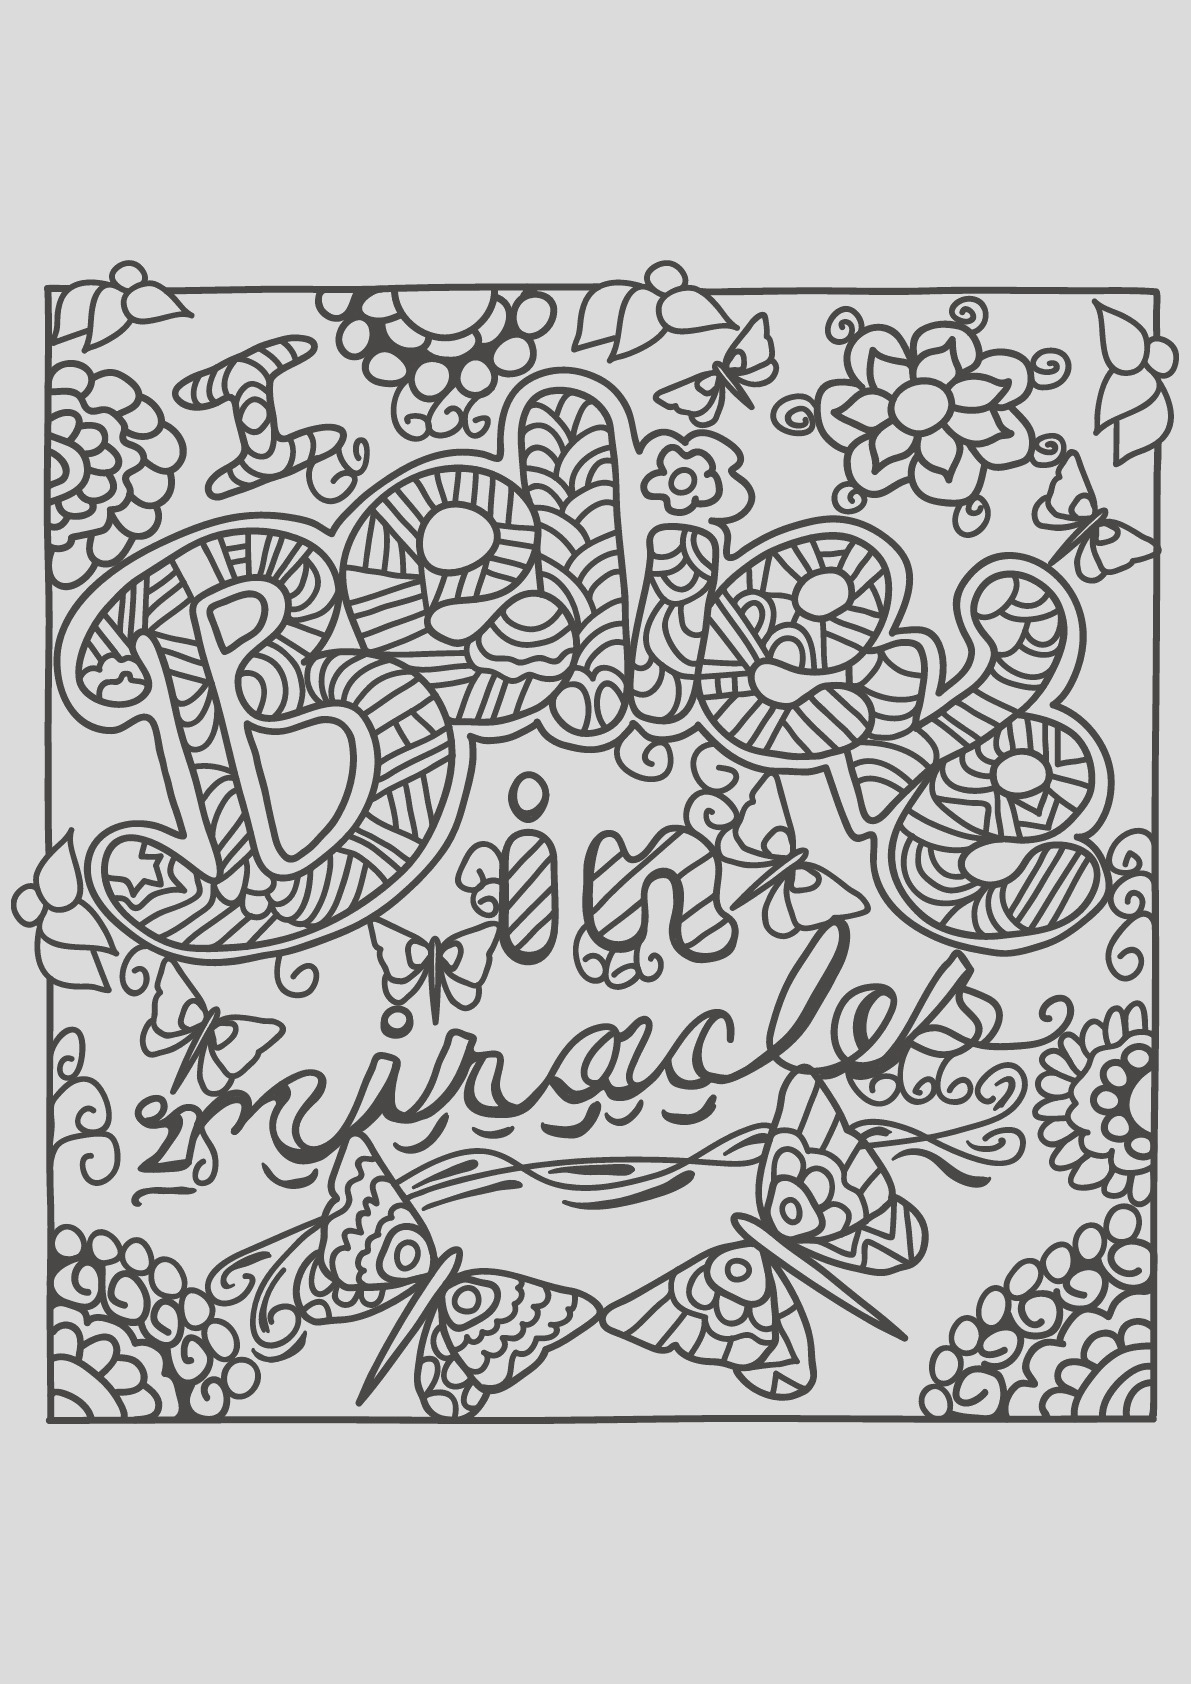 quotes image=quotes coloring free book quote 13 1